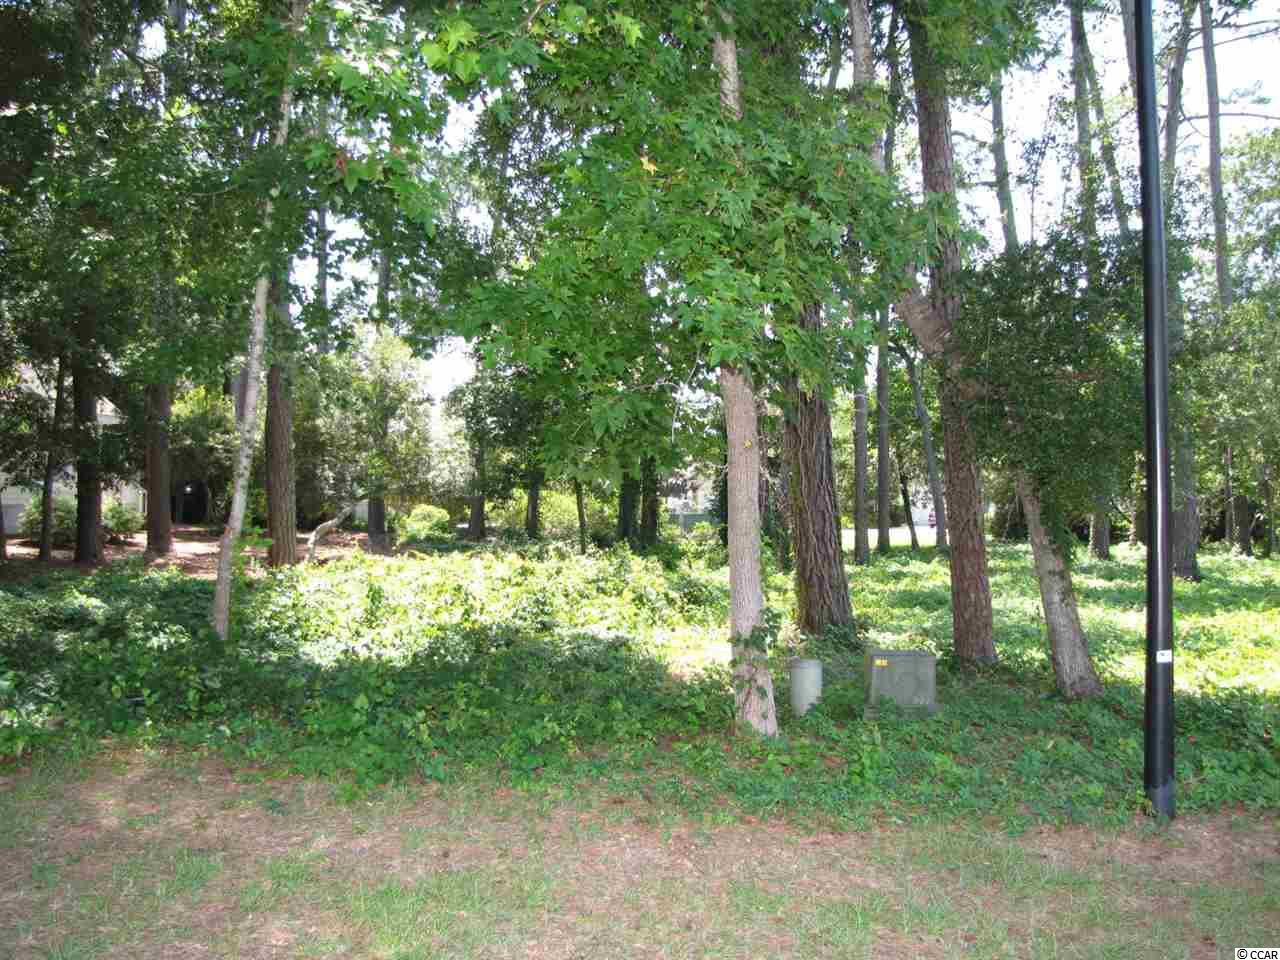 Looking for a lot to build that dream home in a great community, check out Tidewater Plantation!!  This lot is located in the Bluffs section of Tidewater Plantation, there is no time frame to build and bring your builder..  The Bluffs section of Tidewater is a gated section with it's own pool ( only for the Bluffs section residents).  The community is located between the Intracoastal Waterway and the Cherry Grove Inlet to the Atlantic Ocean.  The Bluffs section has it's own pool but the residents are able to use the other two pools hot tubs, in the other Tidewater section.  Tidewater Plantation amenities include putting greens, driving range, tennis courts.  The residents also have an Oceanfront beach Cabana located on North Ocean Blvd.   Great lot to build that dream home and close to the Blue Atlantic Ocean!!!!